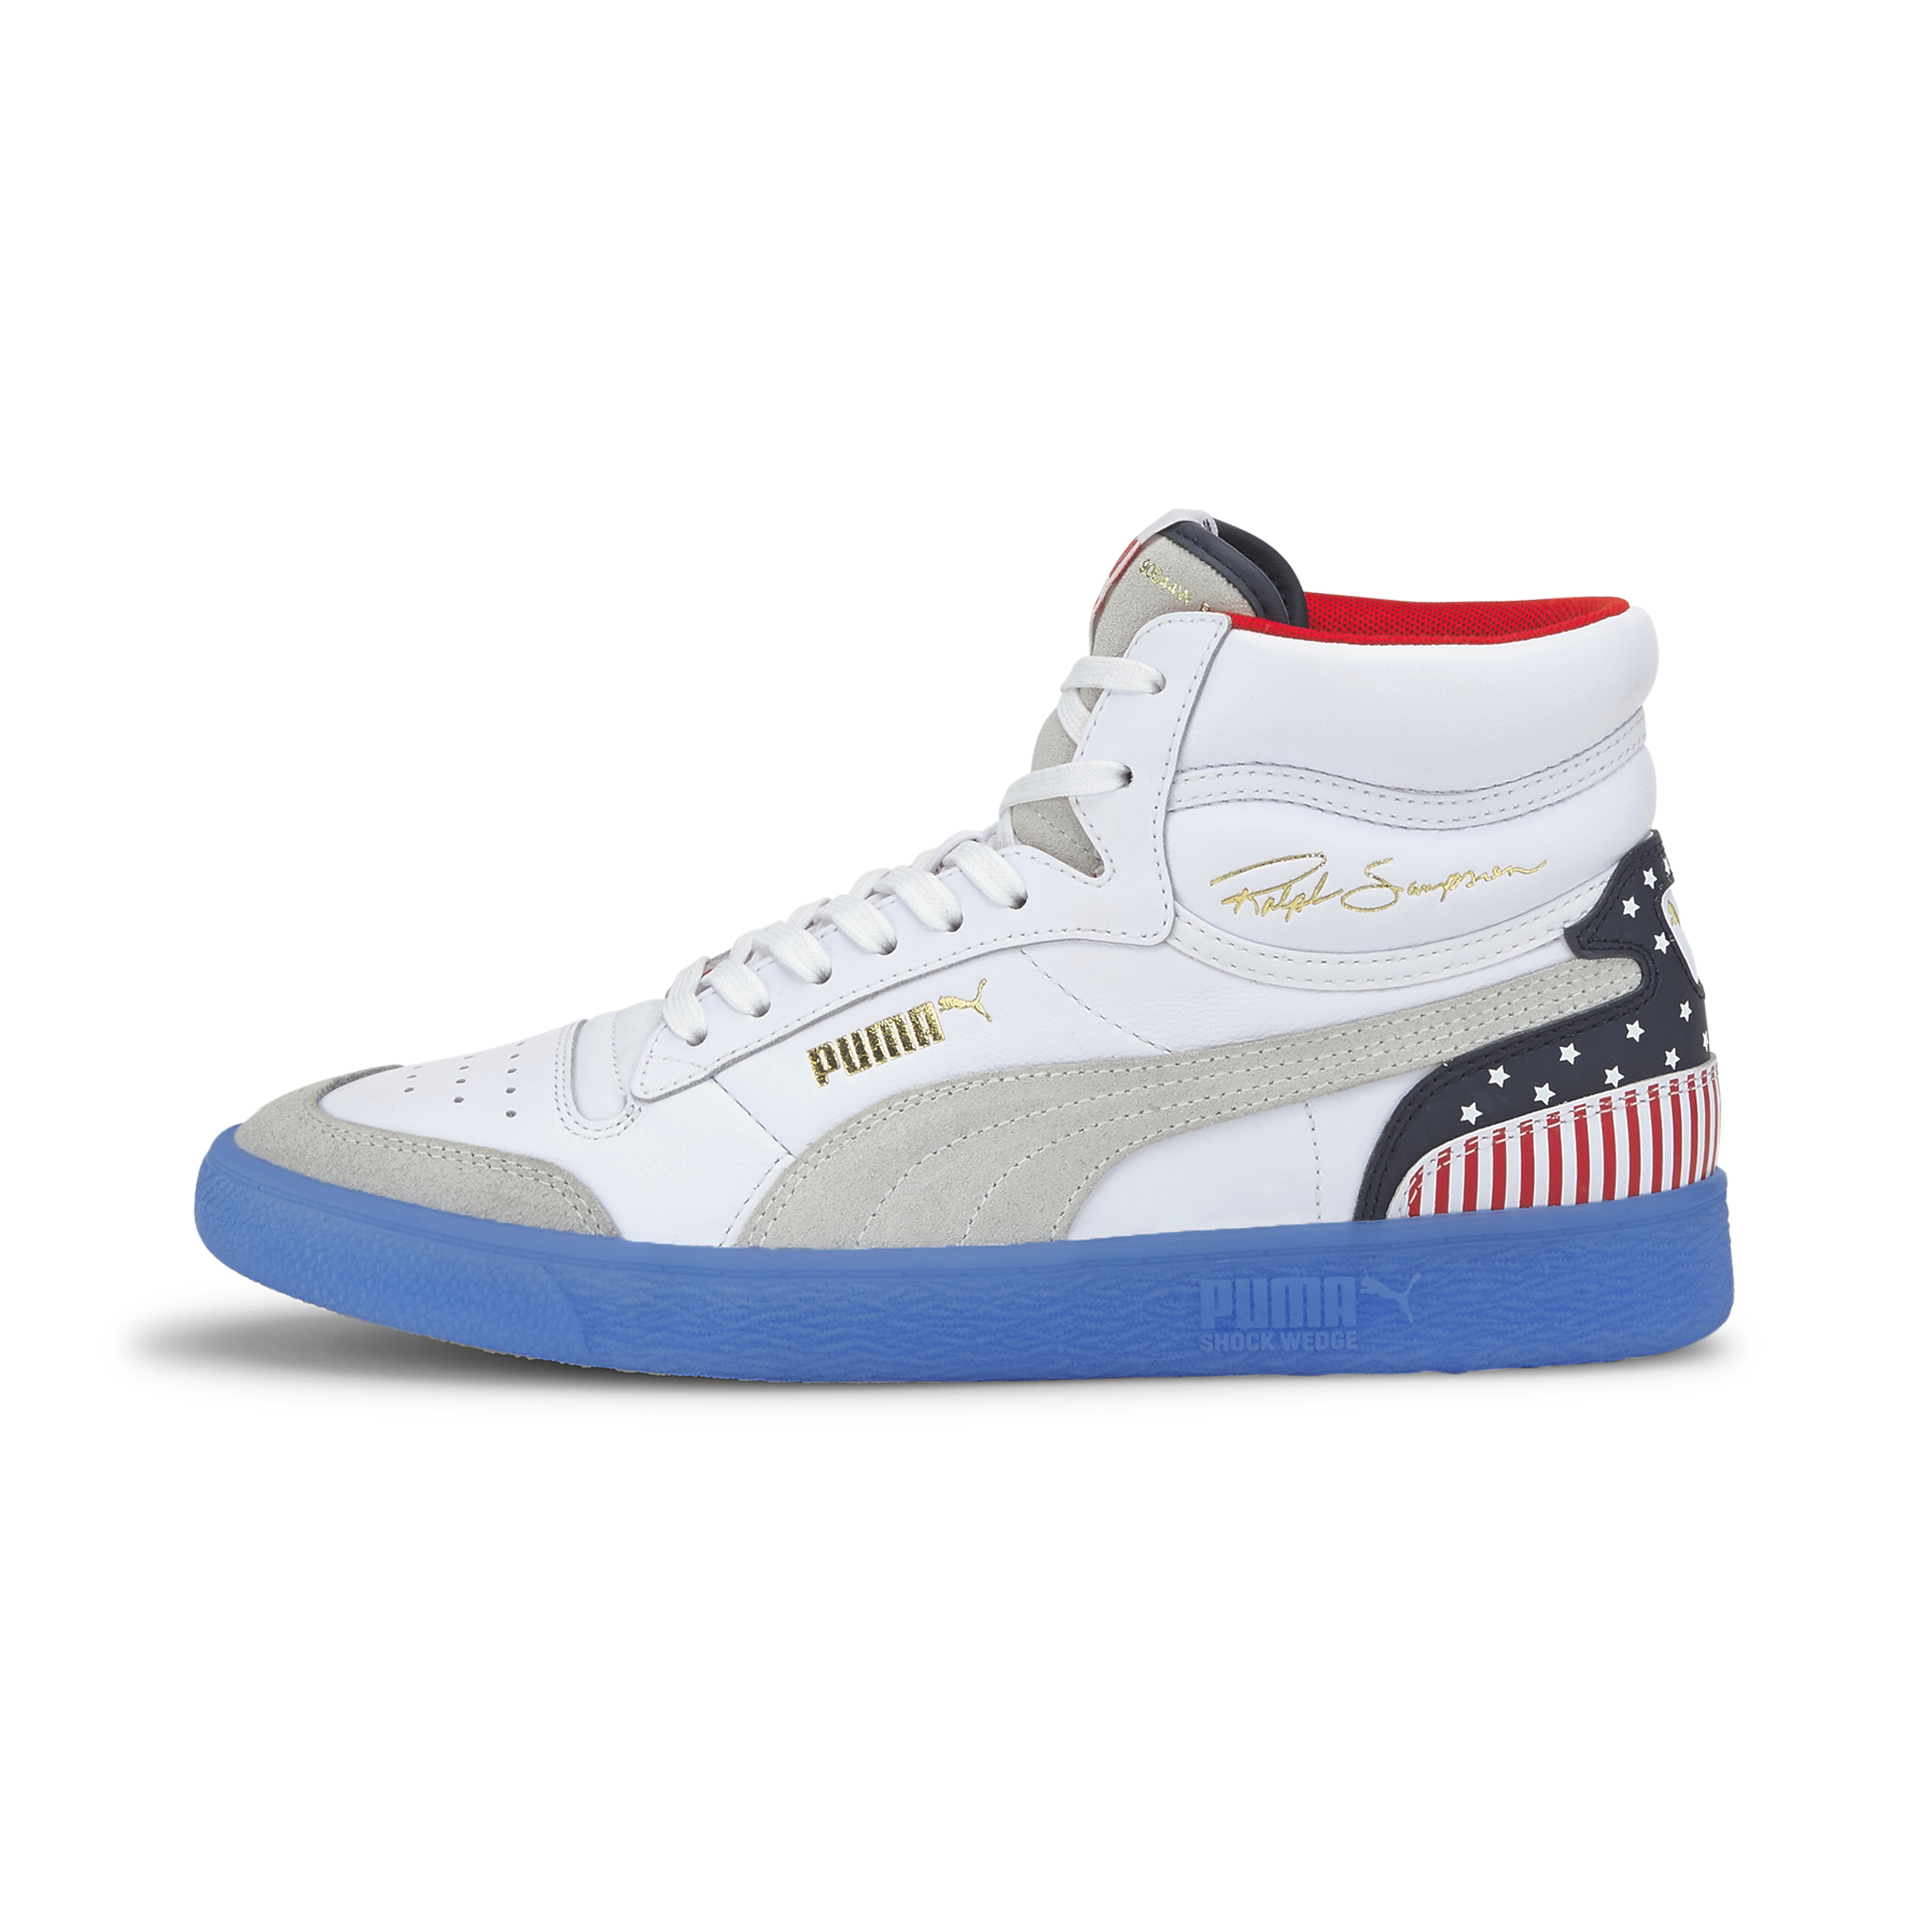 Puma Ralph Sampson Mid 4thofJuly Puma White-Peacoat-High Risk Red 37407301